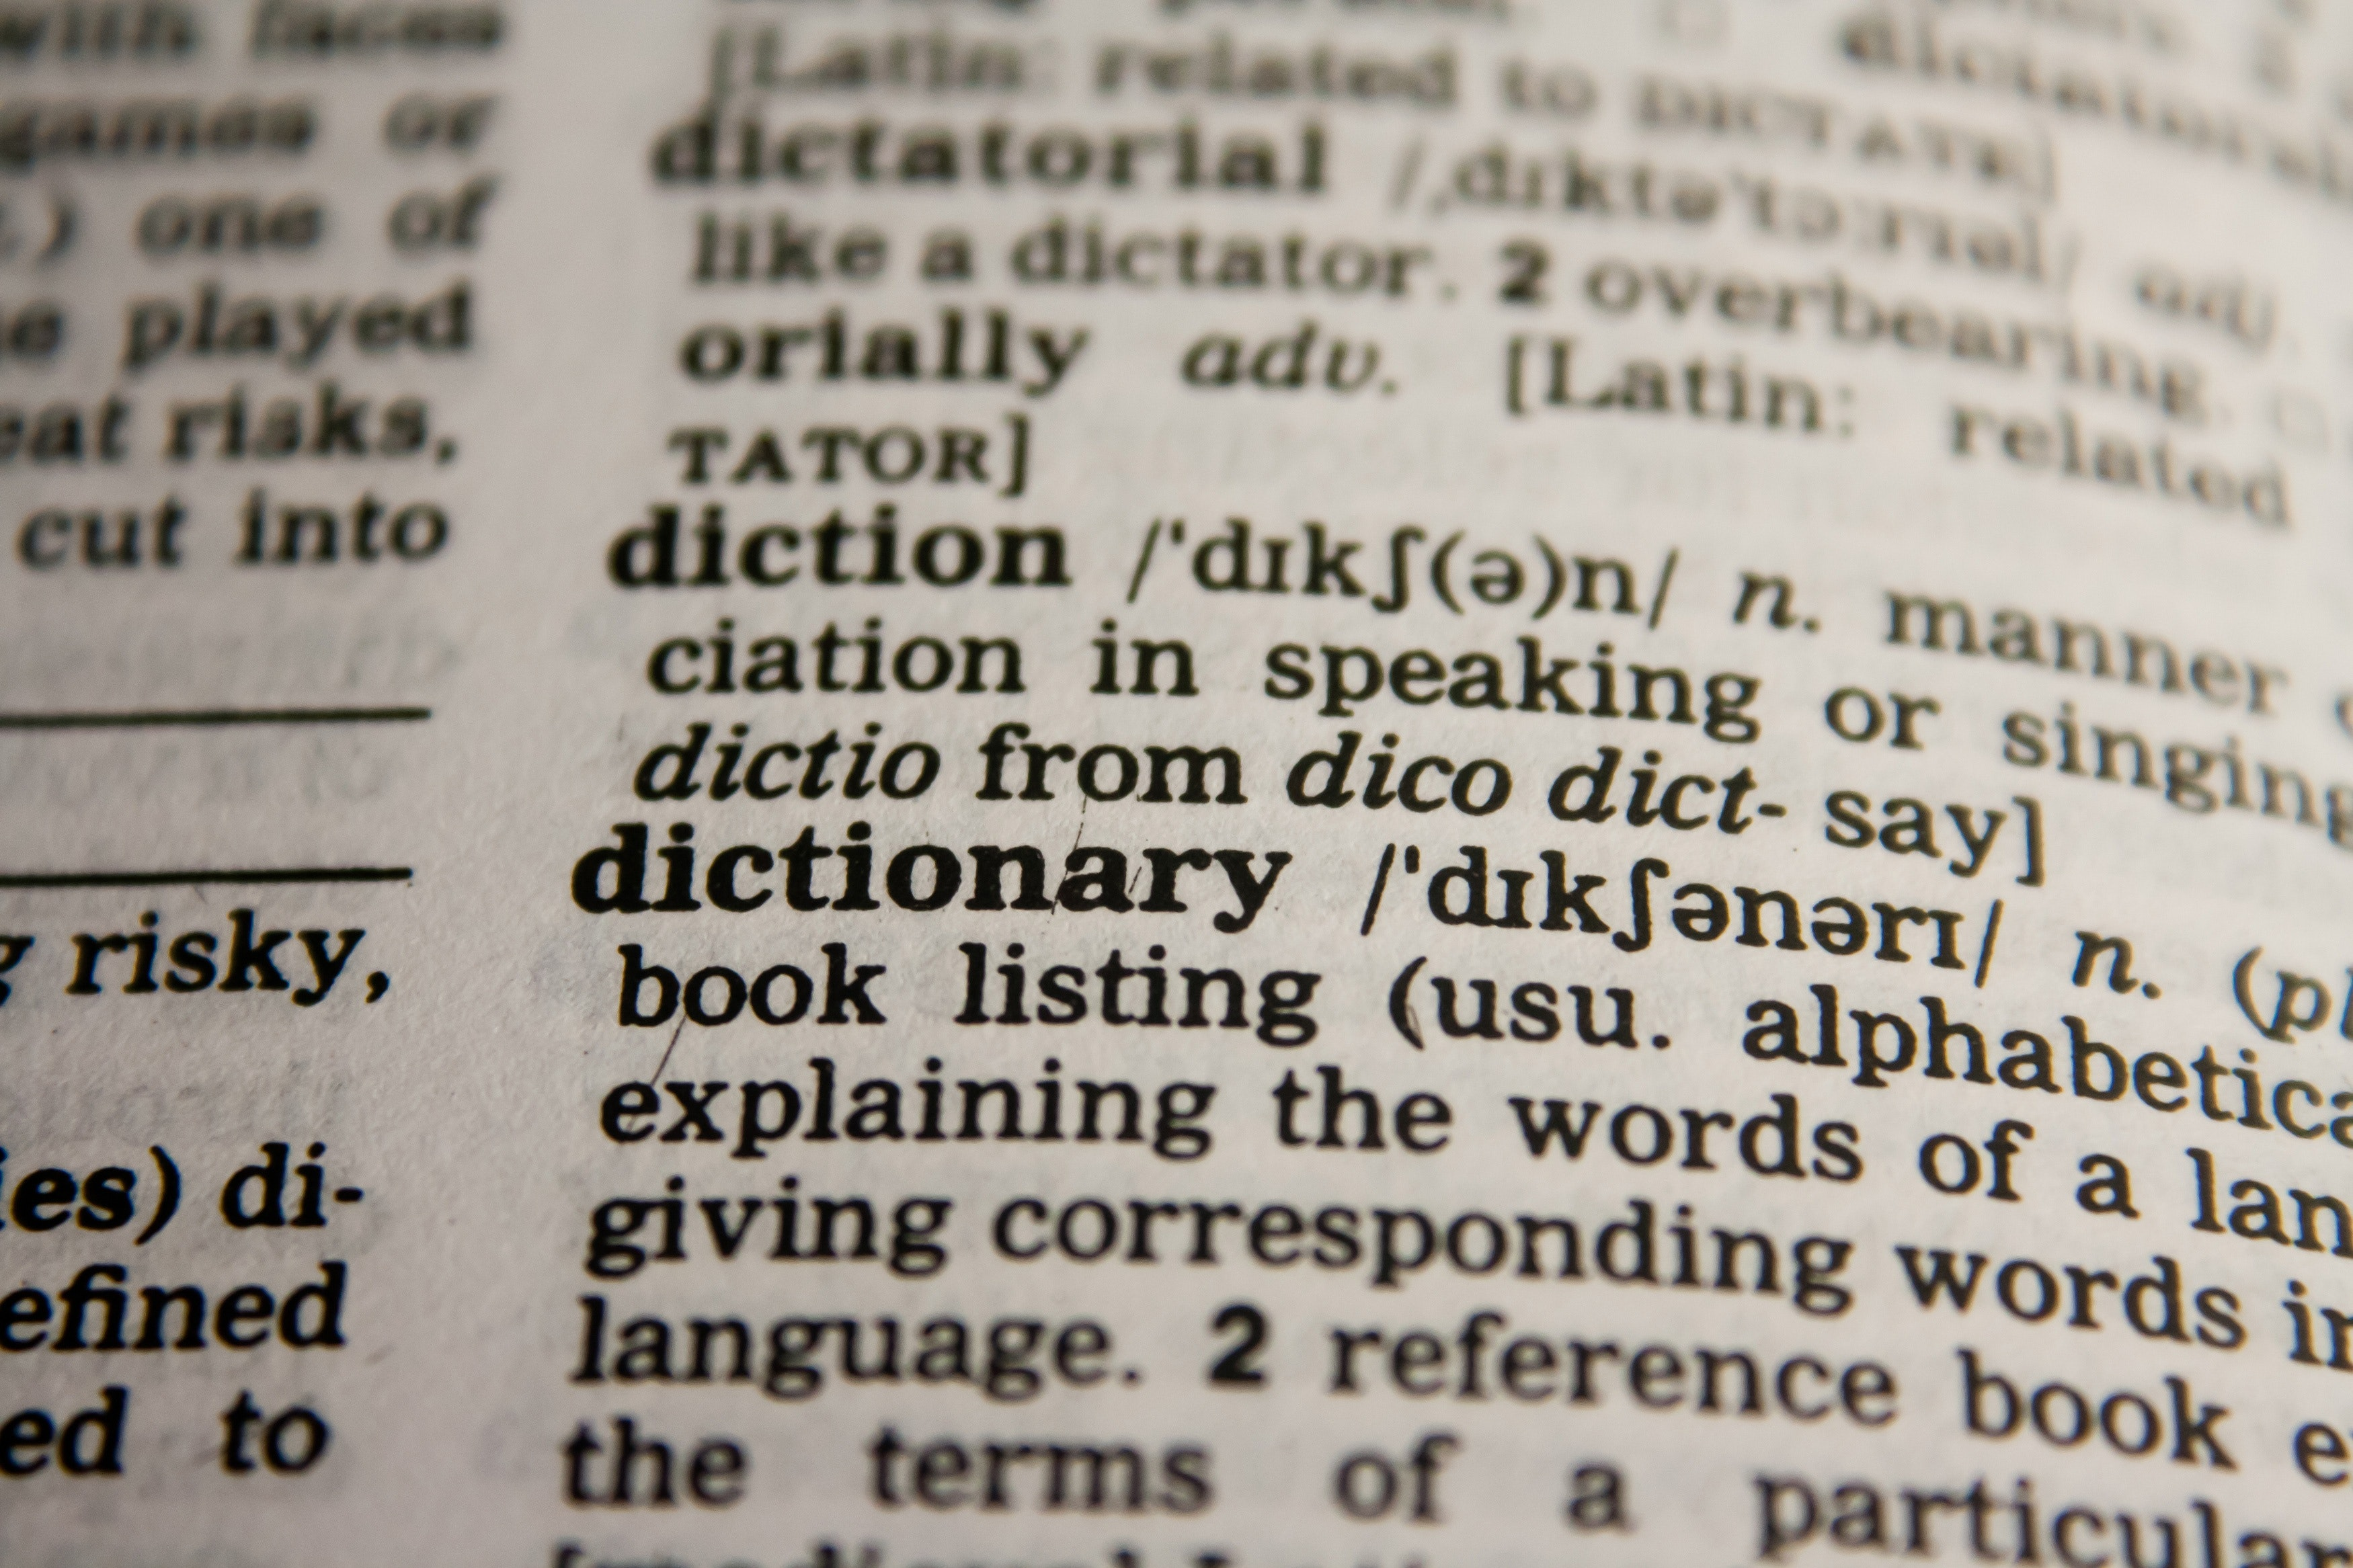 a dictionary photo symbolizing language should be set on accessible PDF